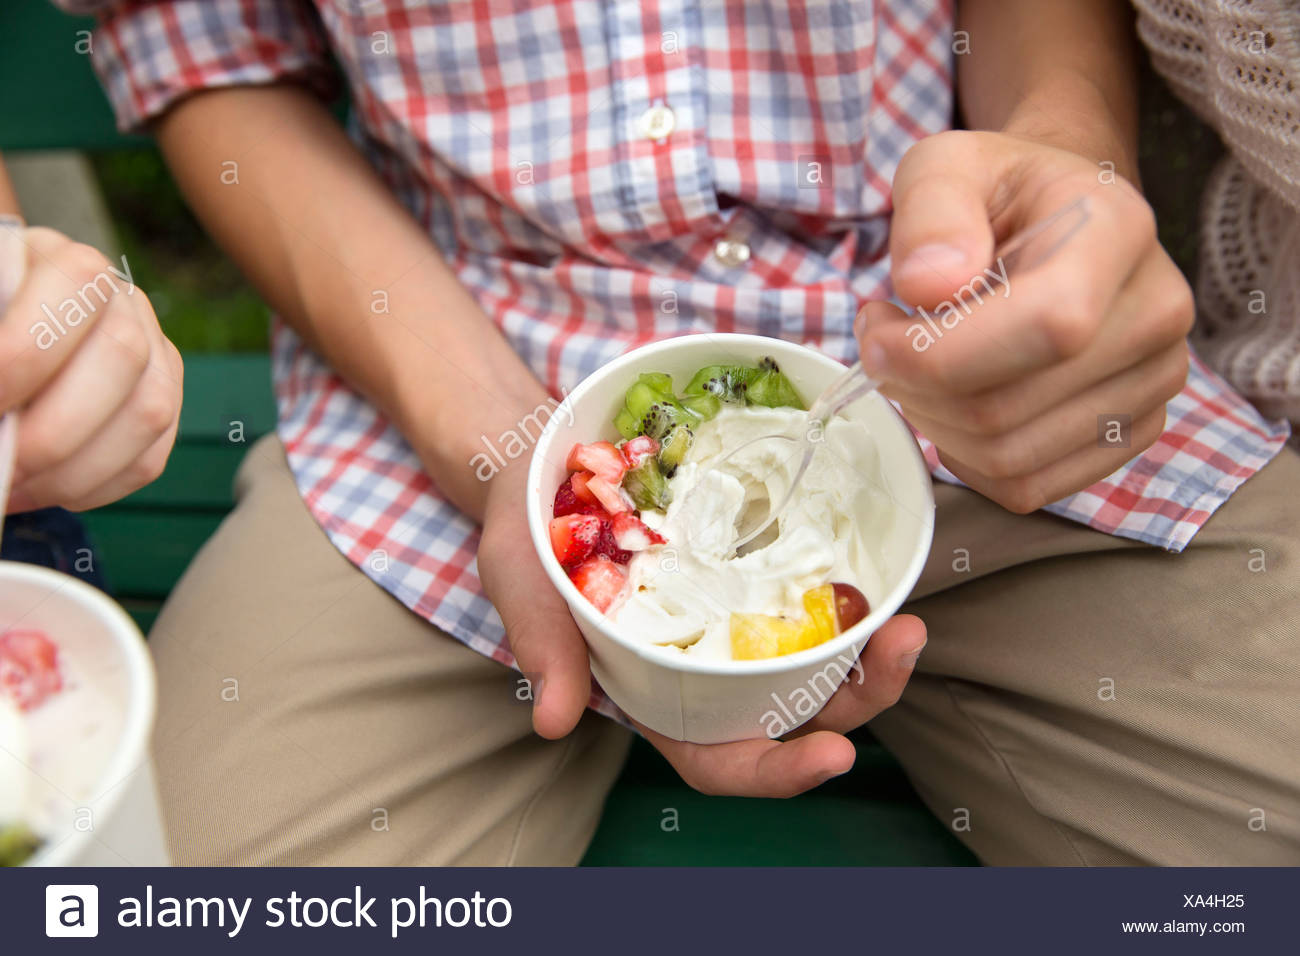 Young people sitting side by side, eating fresh organic fruit and yoghurt desert. Stock Photo